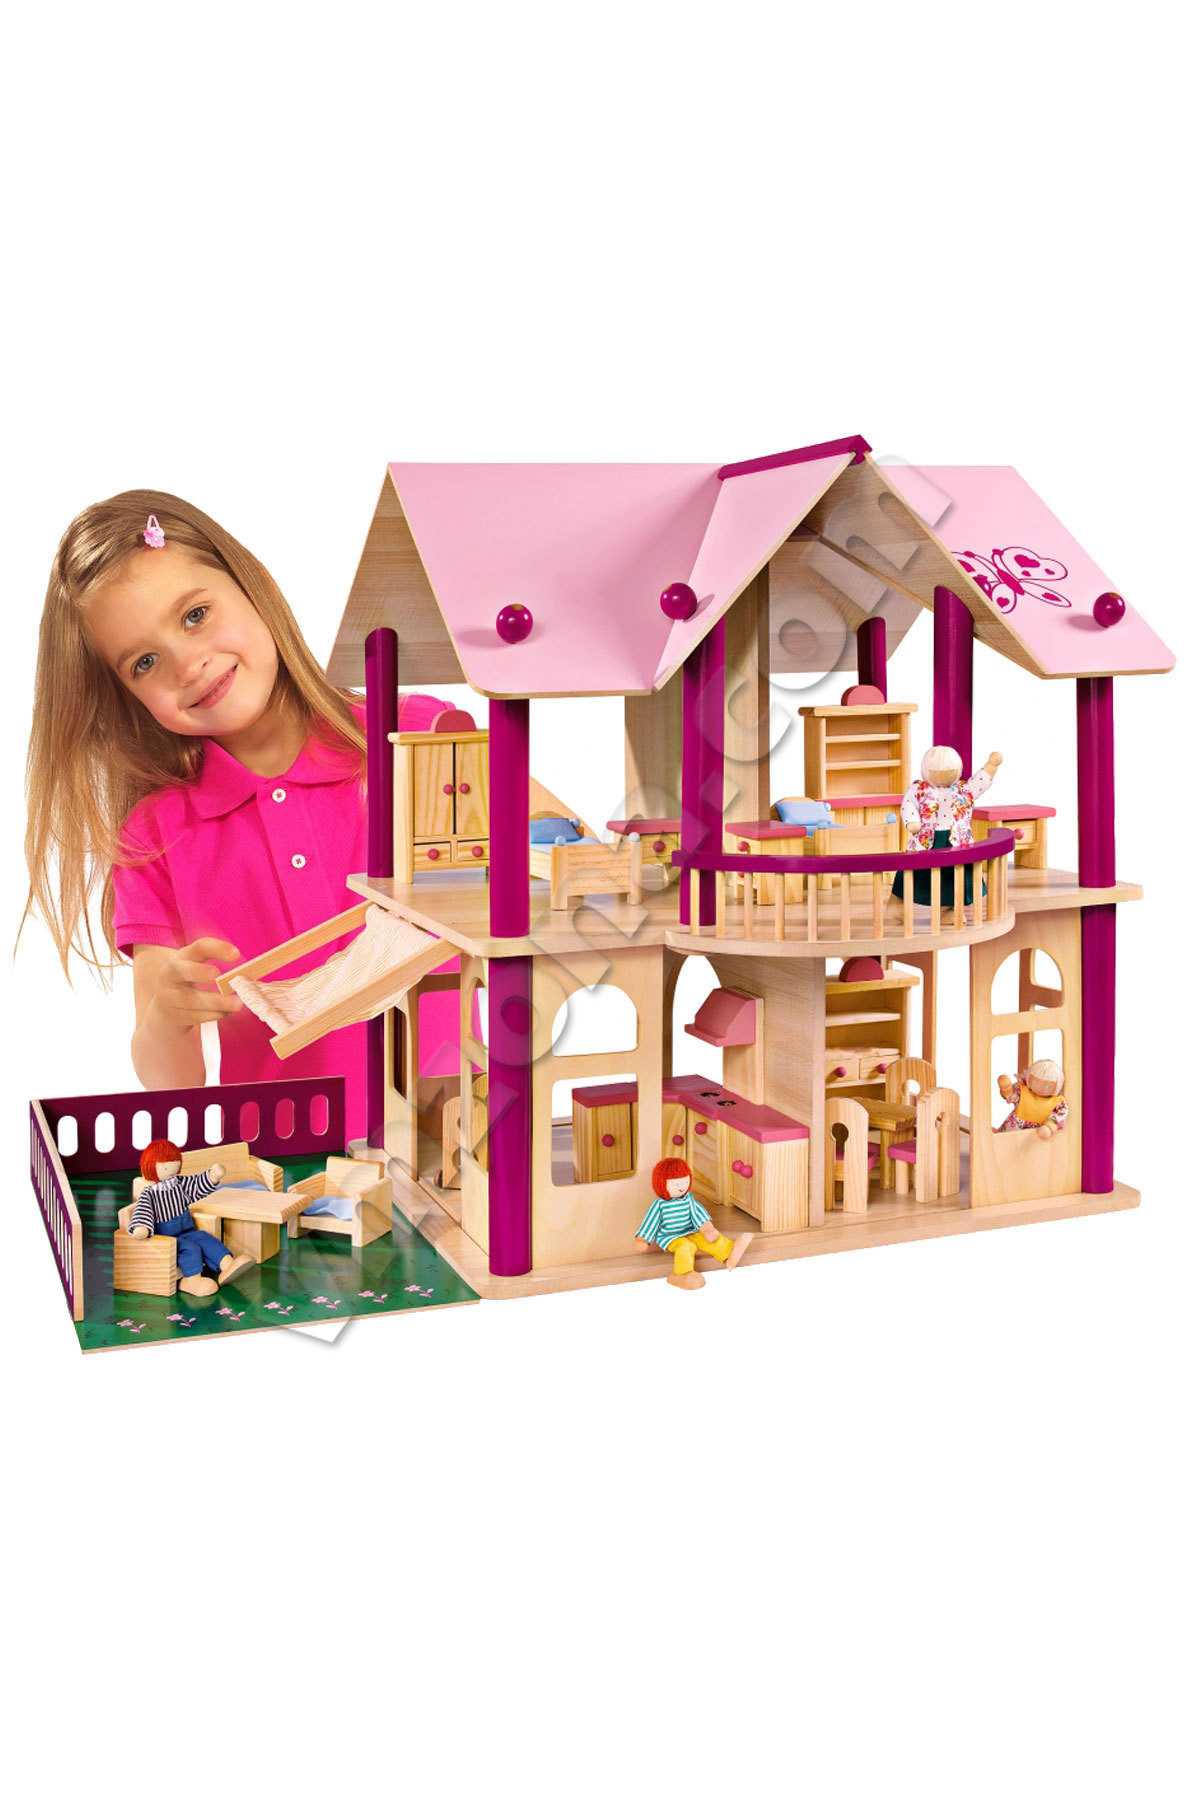 a dolls house the role - the miracle of a doll's house in the play a doll's house, nora fits in a role of the little helpless wife whose  - 1 a dolls house a dolls house.